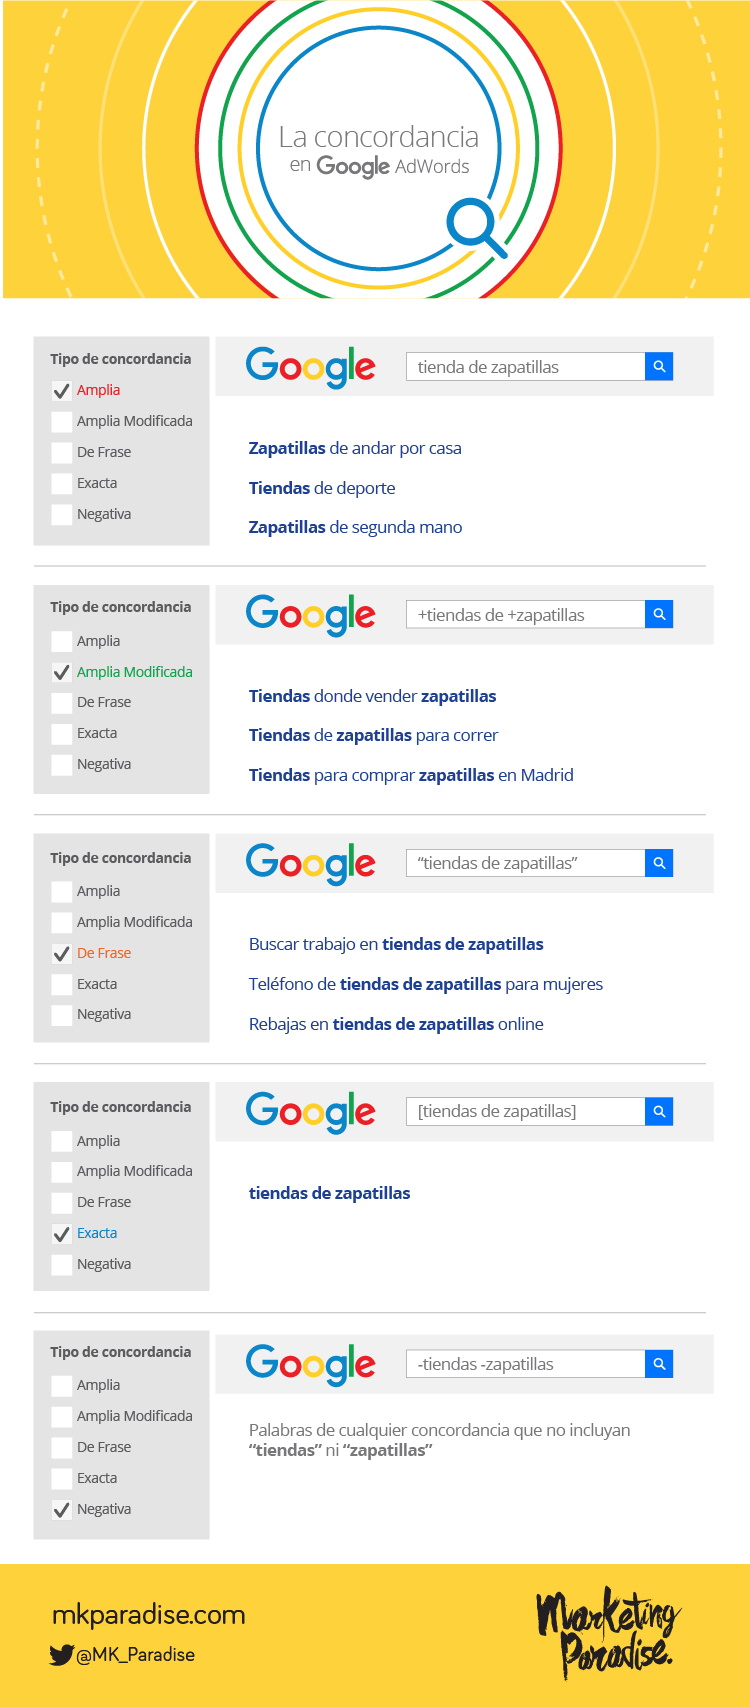 La concordancia en Google Adwords #infografia #inforaphic #marketing